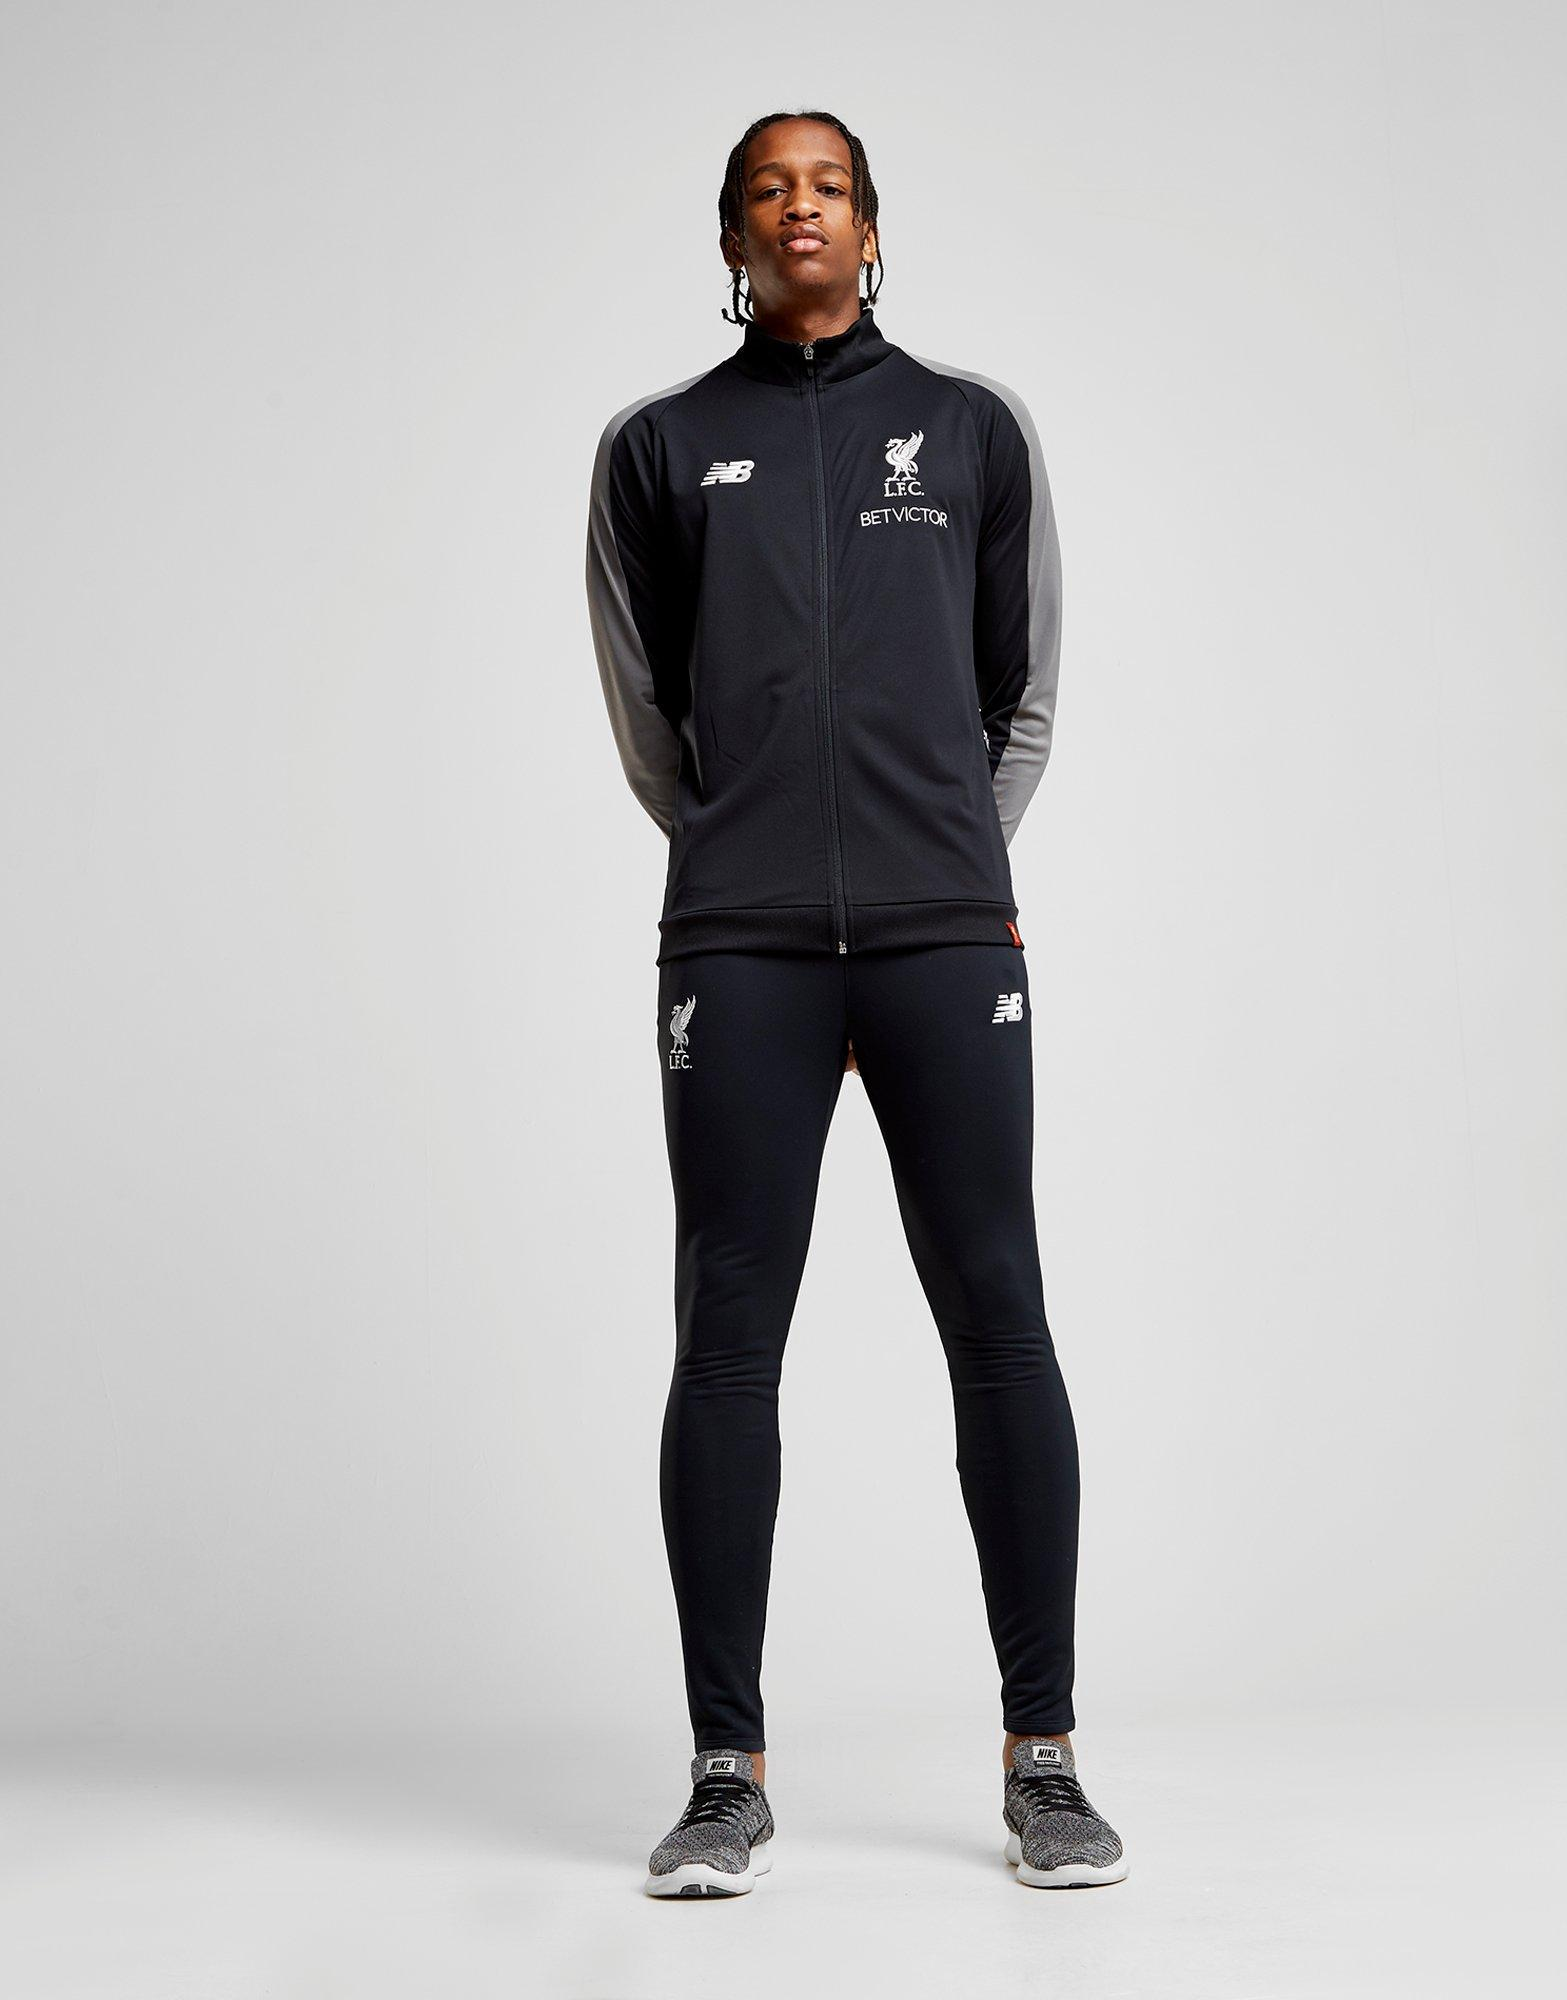 fcba8a5fc3f08 New Balance Liverpool Fc Tech Pants in Black for Men - Lyst